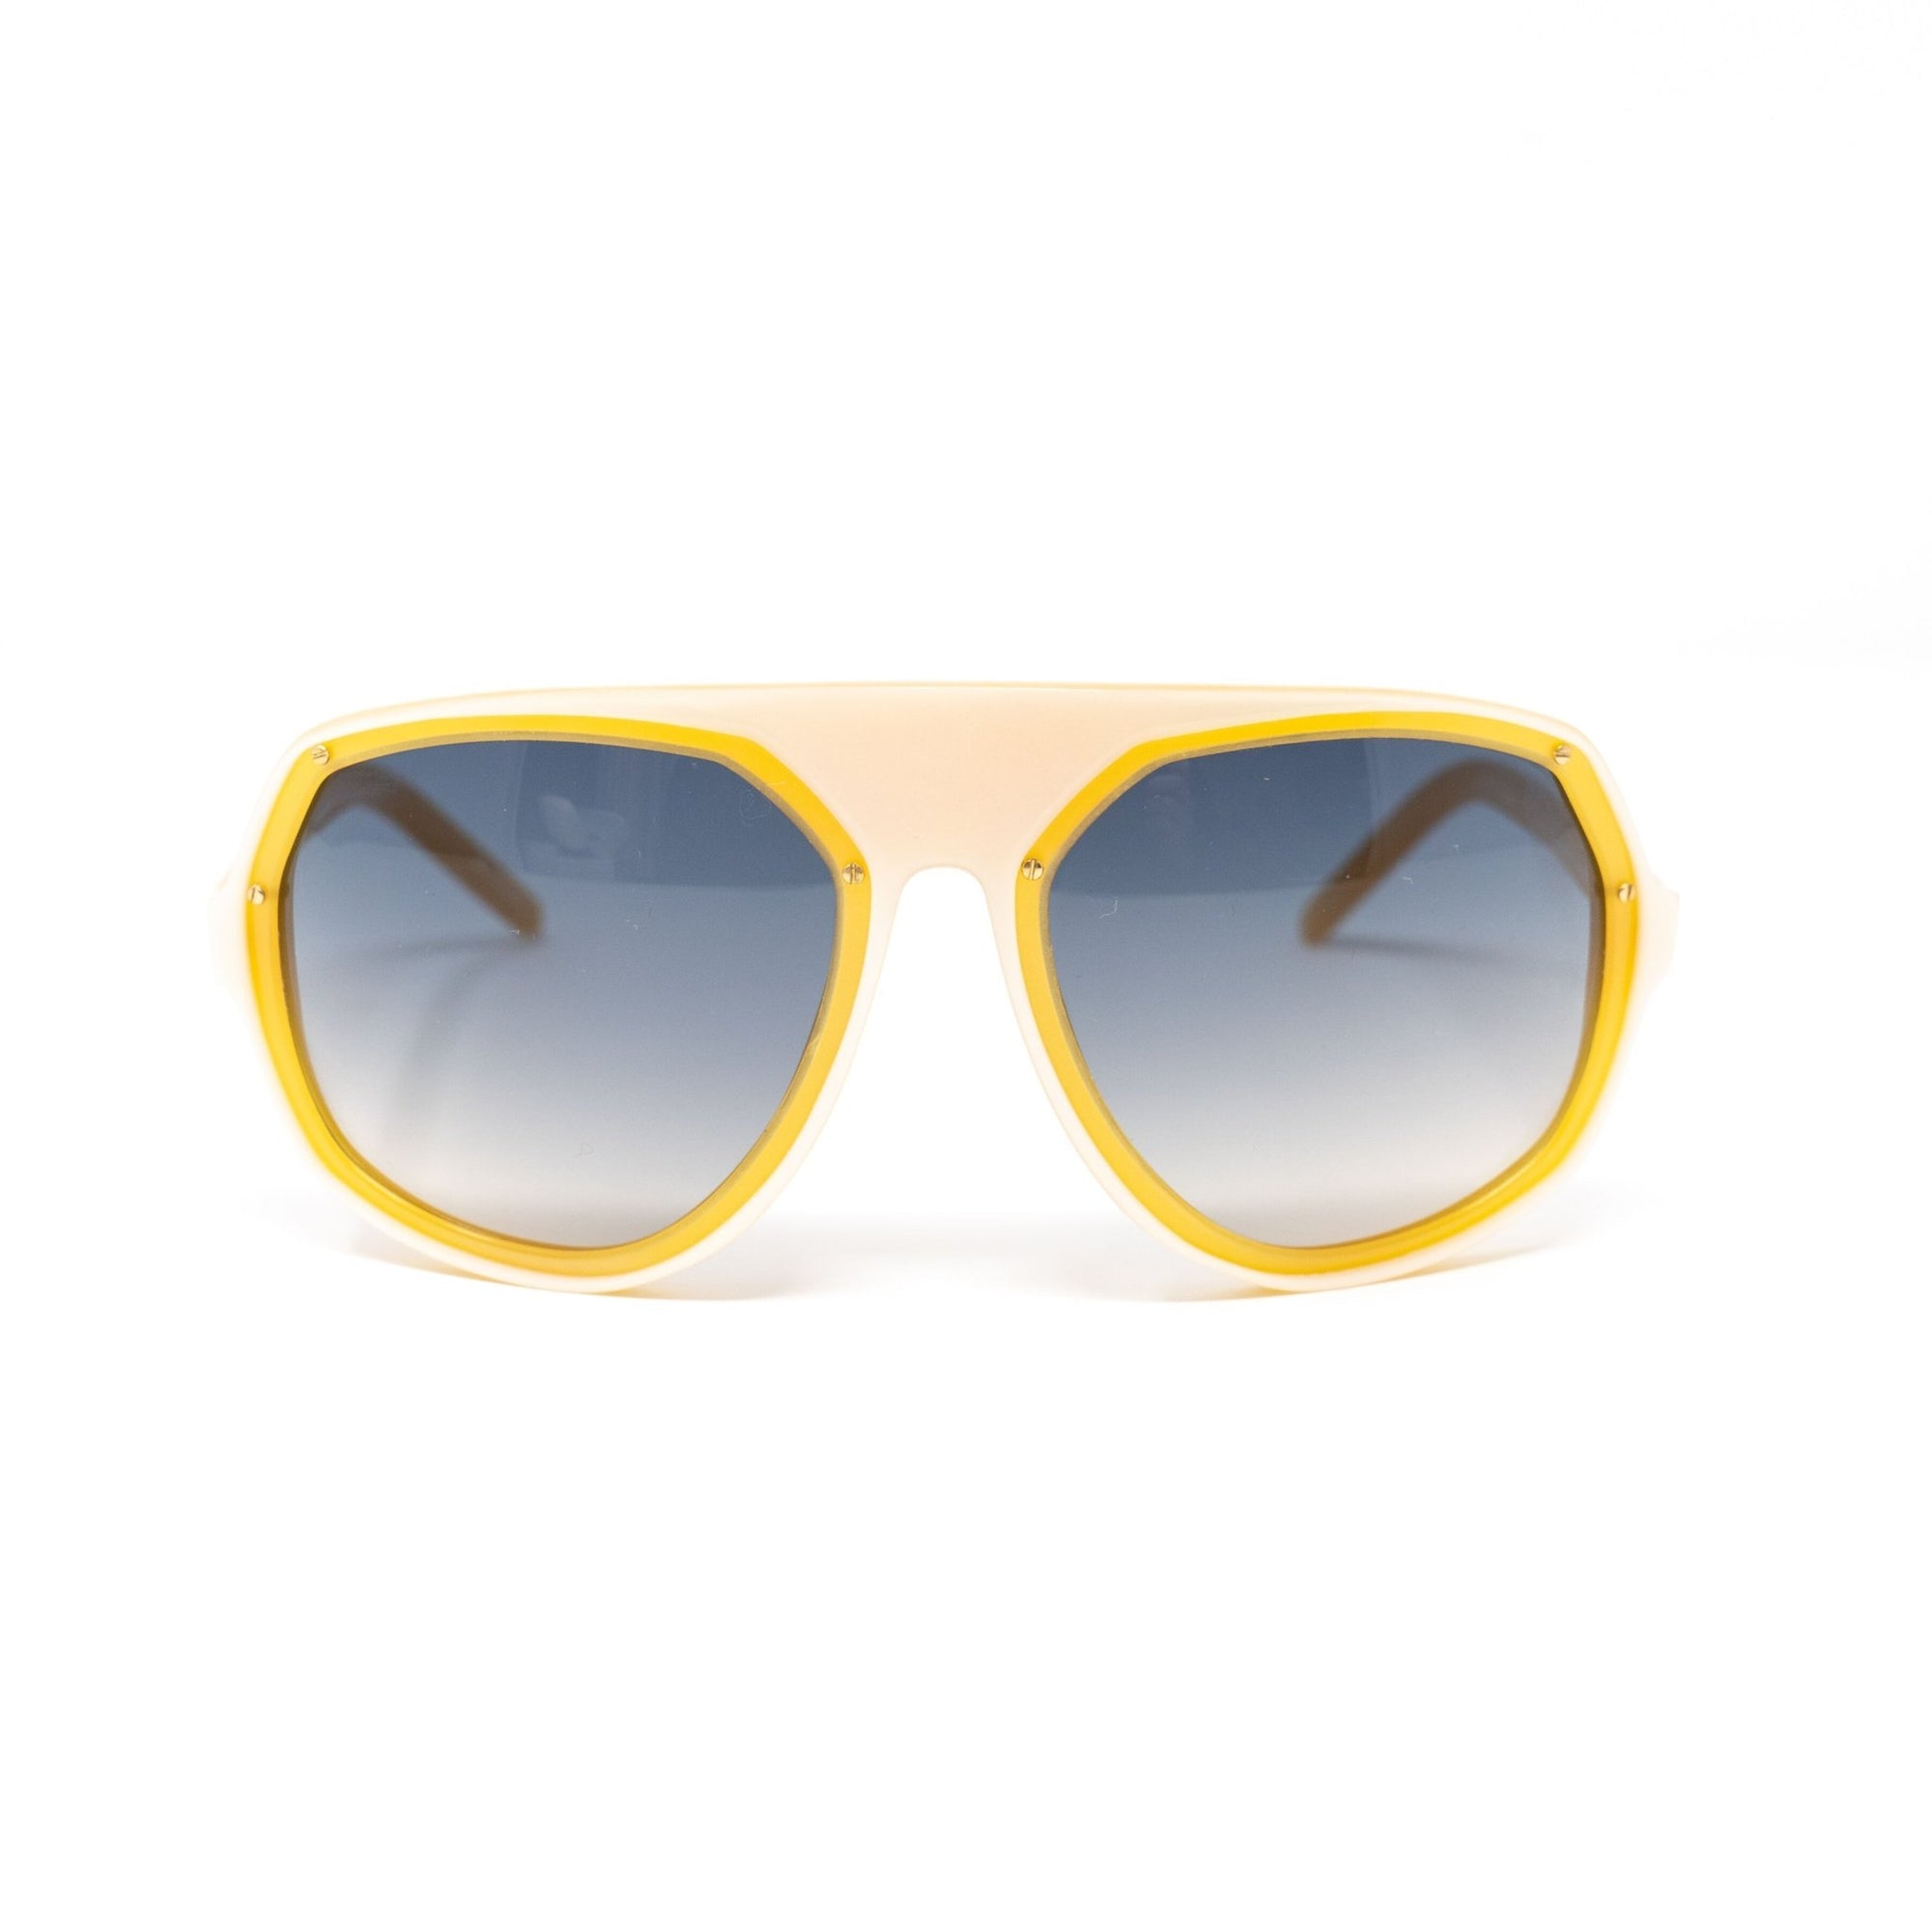 Raf Simons Sunglasses Angular Pearl Orange and Blue Lenses - 8RAF1DPEARLORANGE - Watches & Crystals